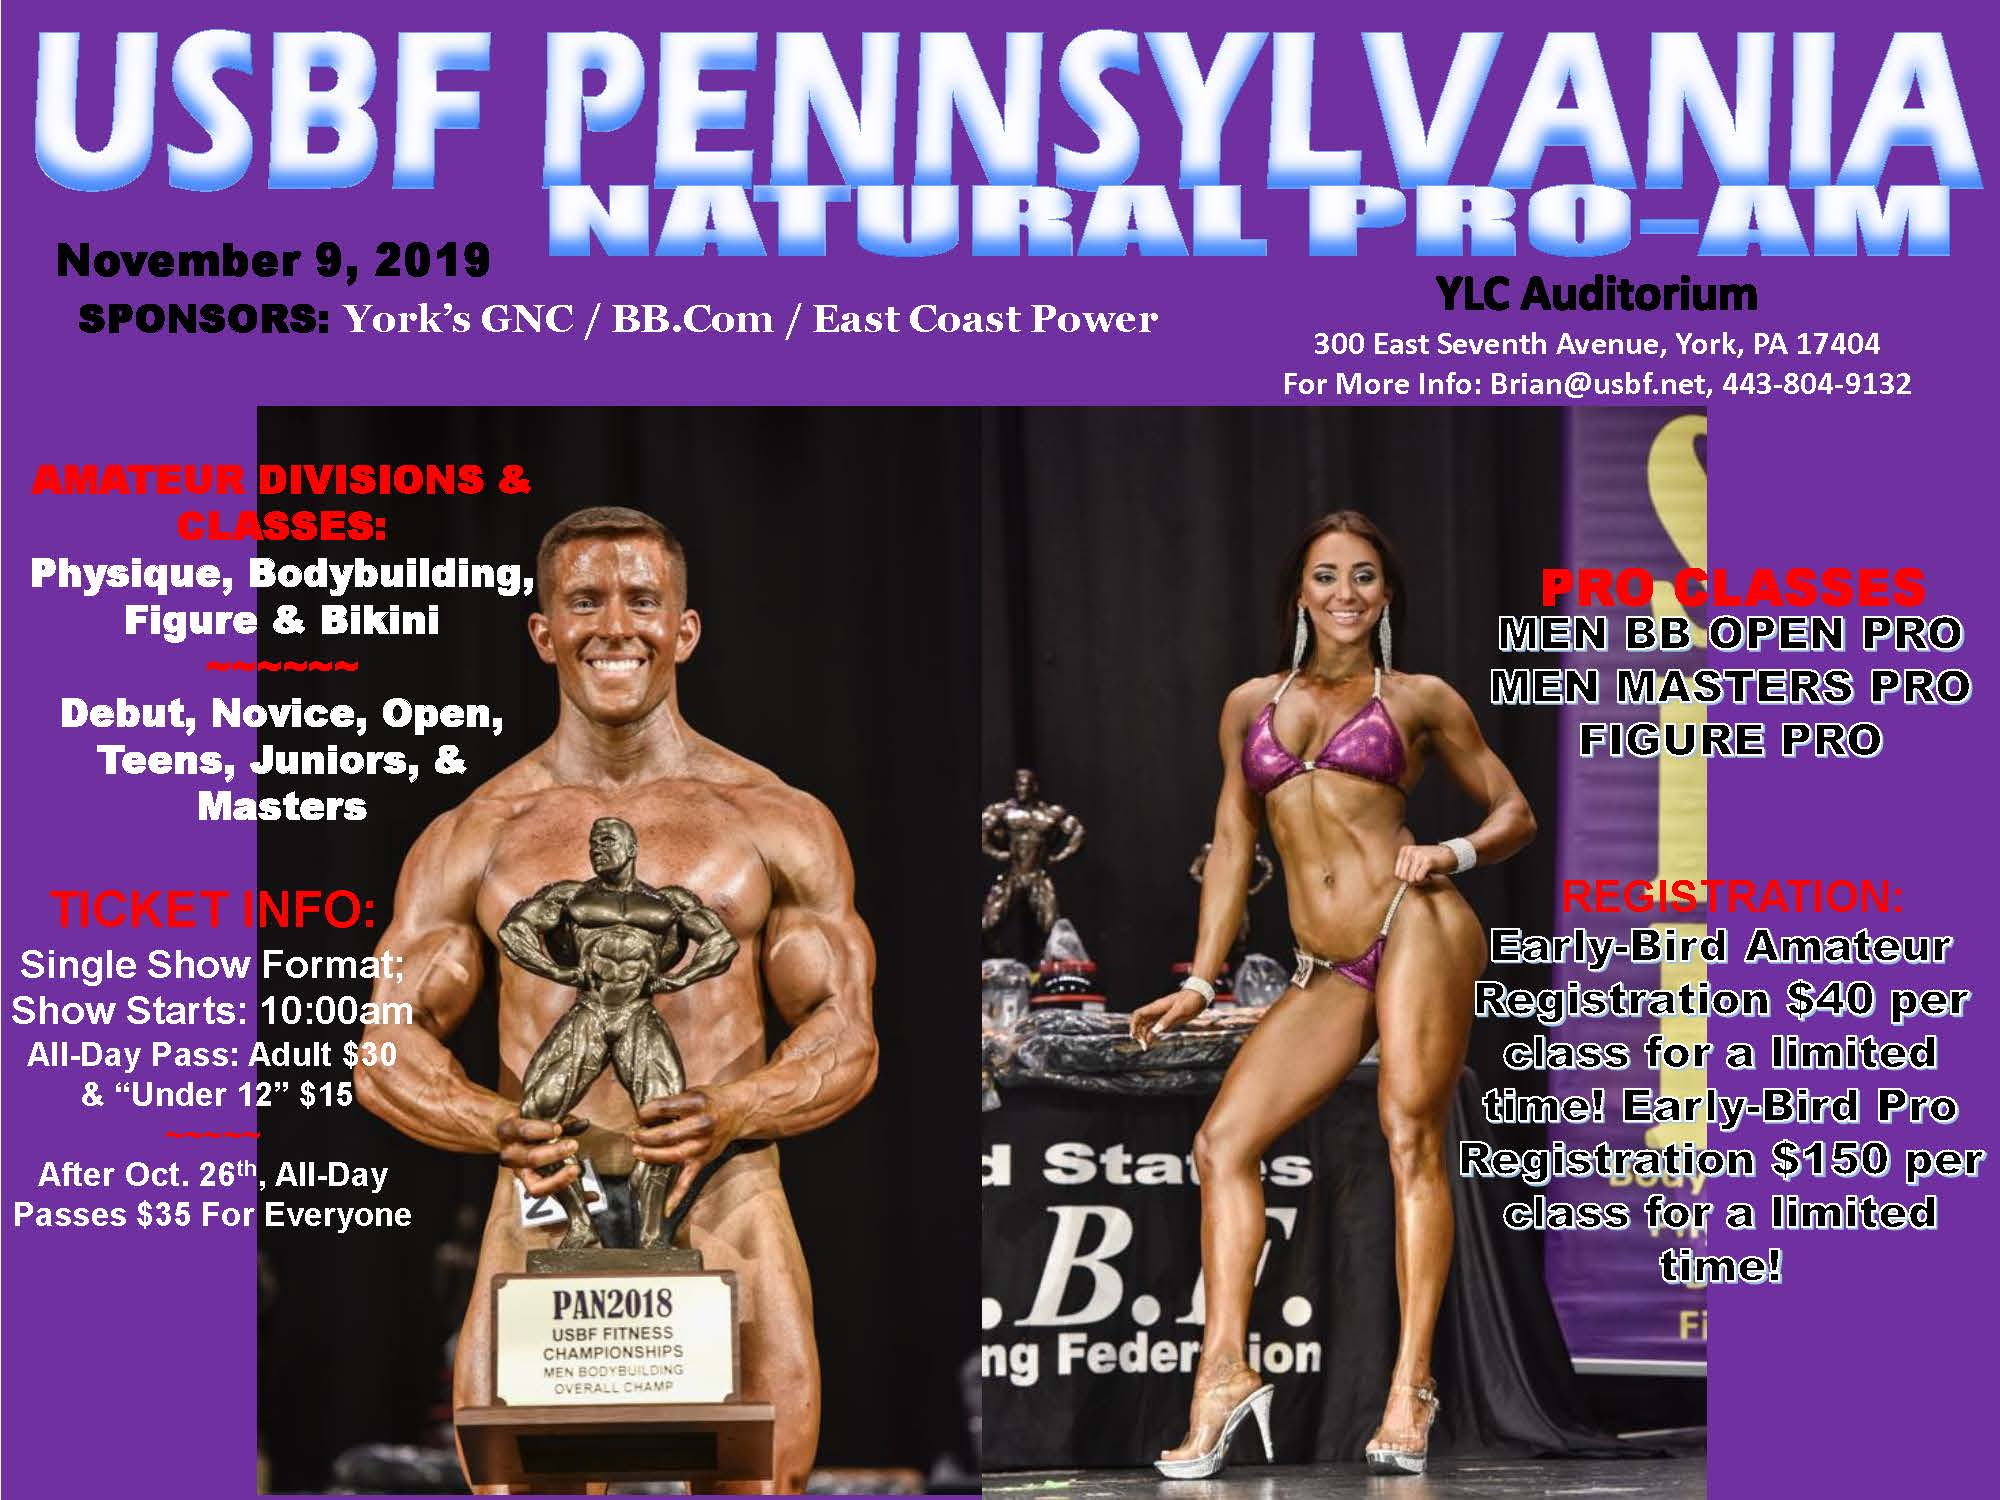 2019 USBF Pennsylvania Natural Pro Am